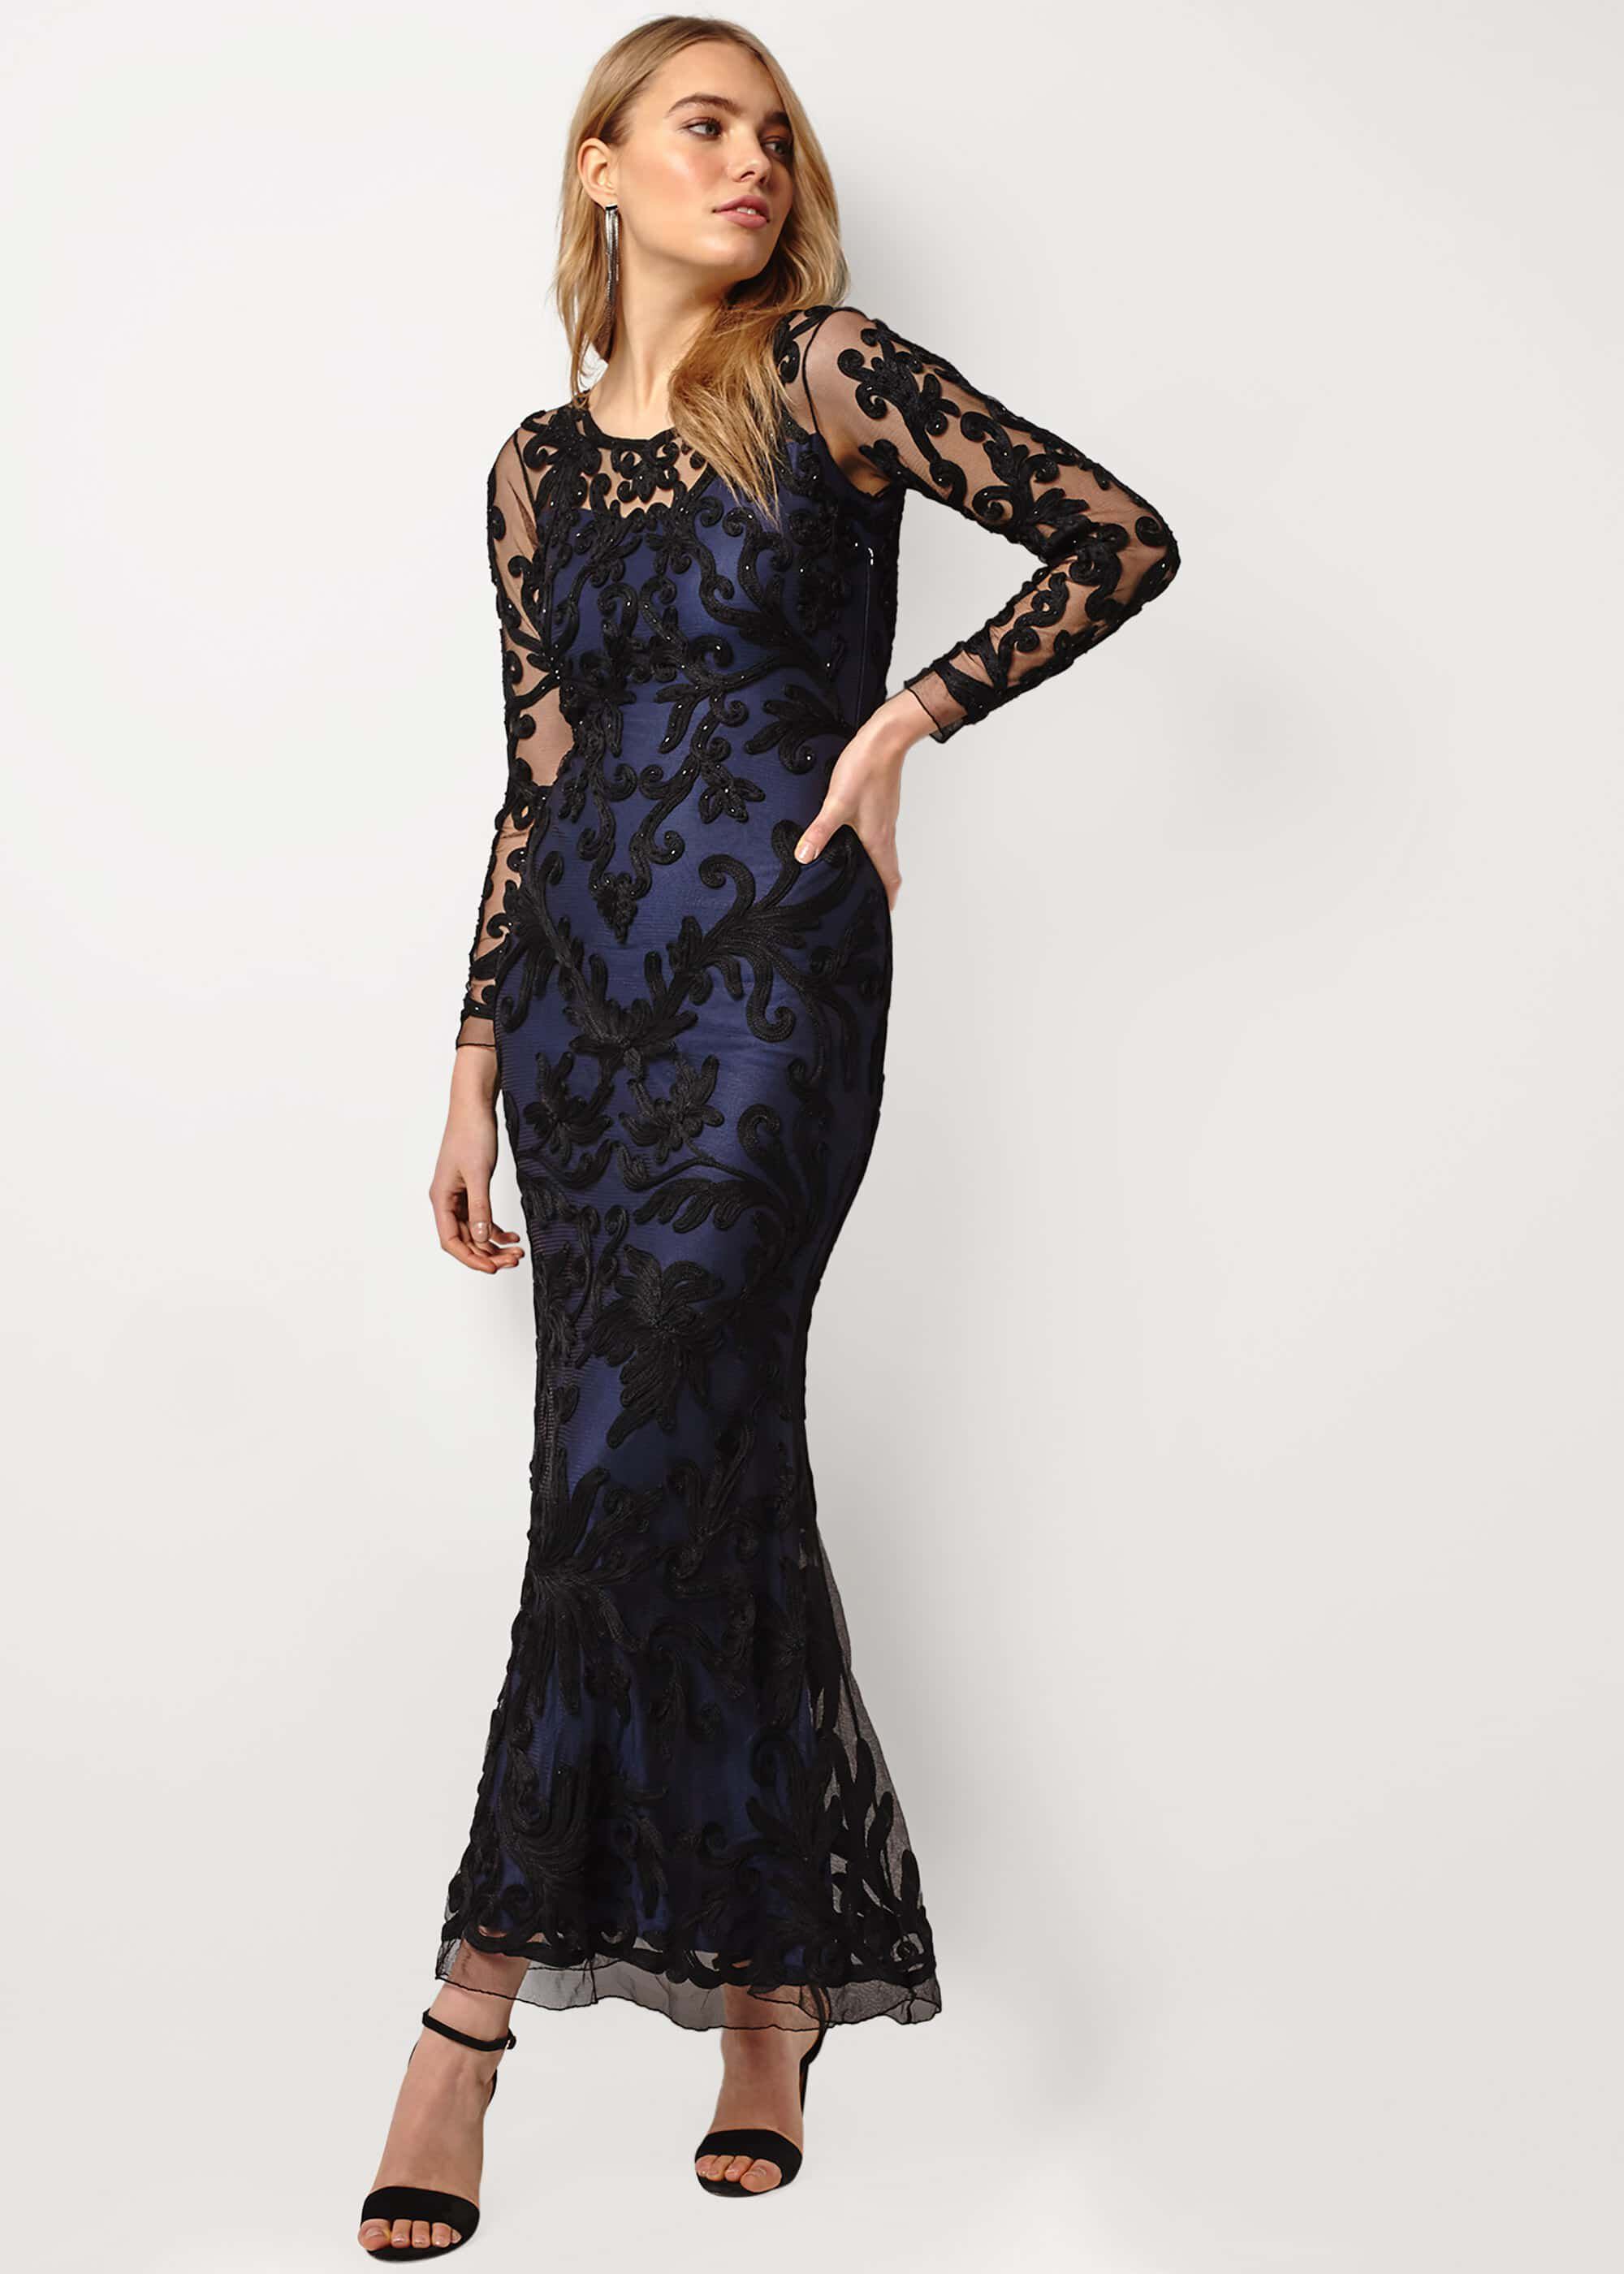 Phase Eight Aubree Tapework Lace Maxi Dress, Black, Maxi